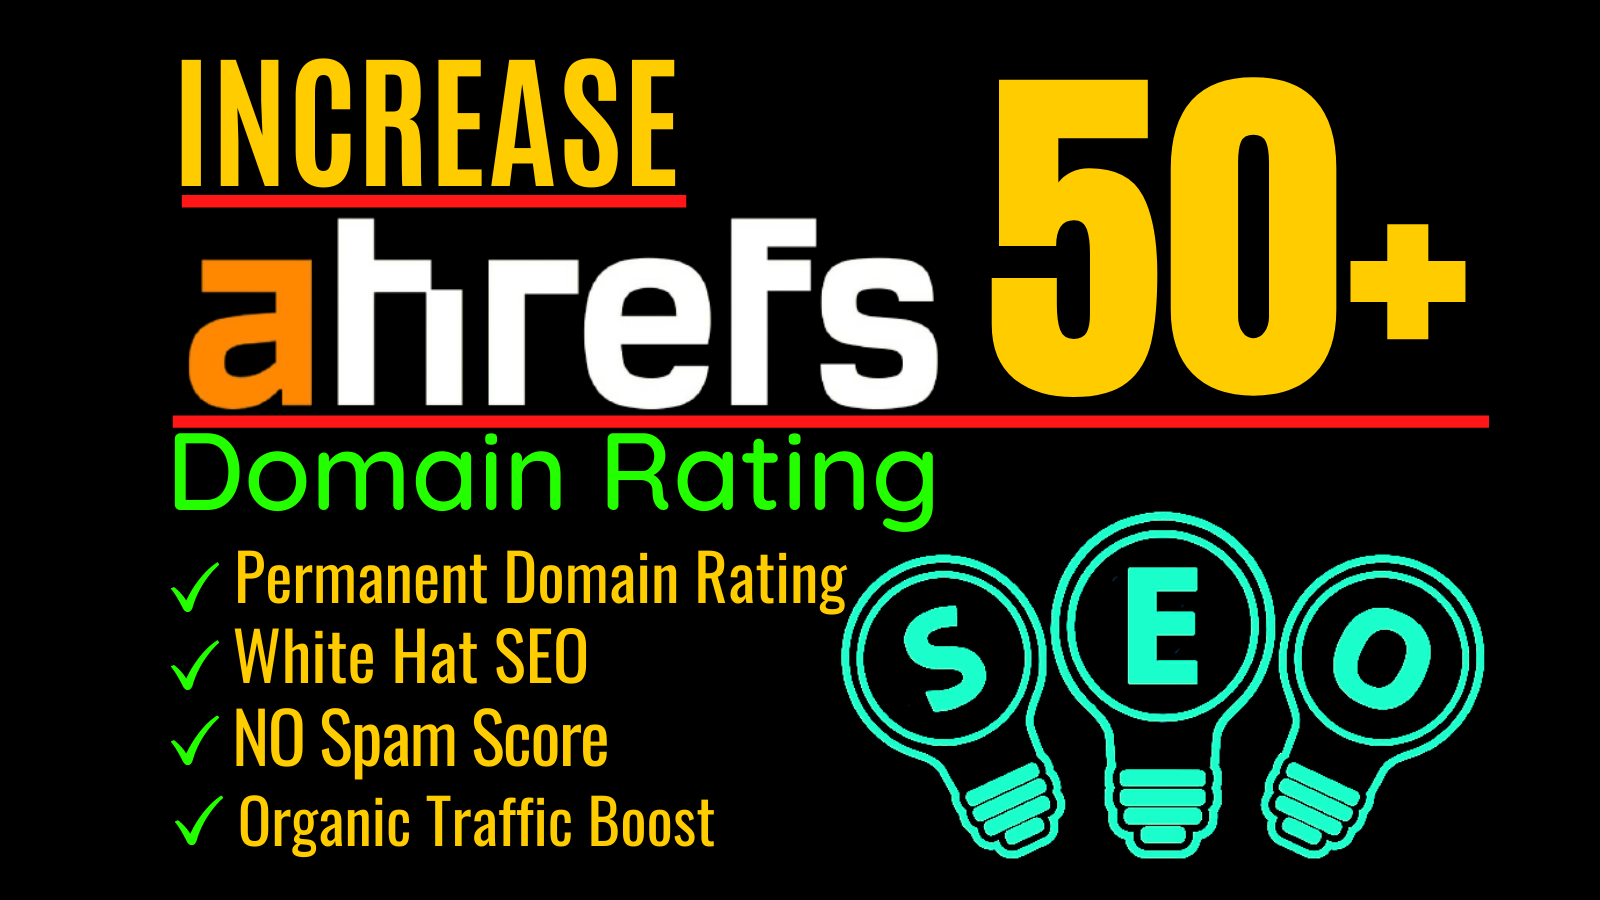 I will increase ahrefs domain rating or increase domain rating 50 plus